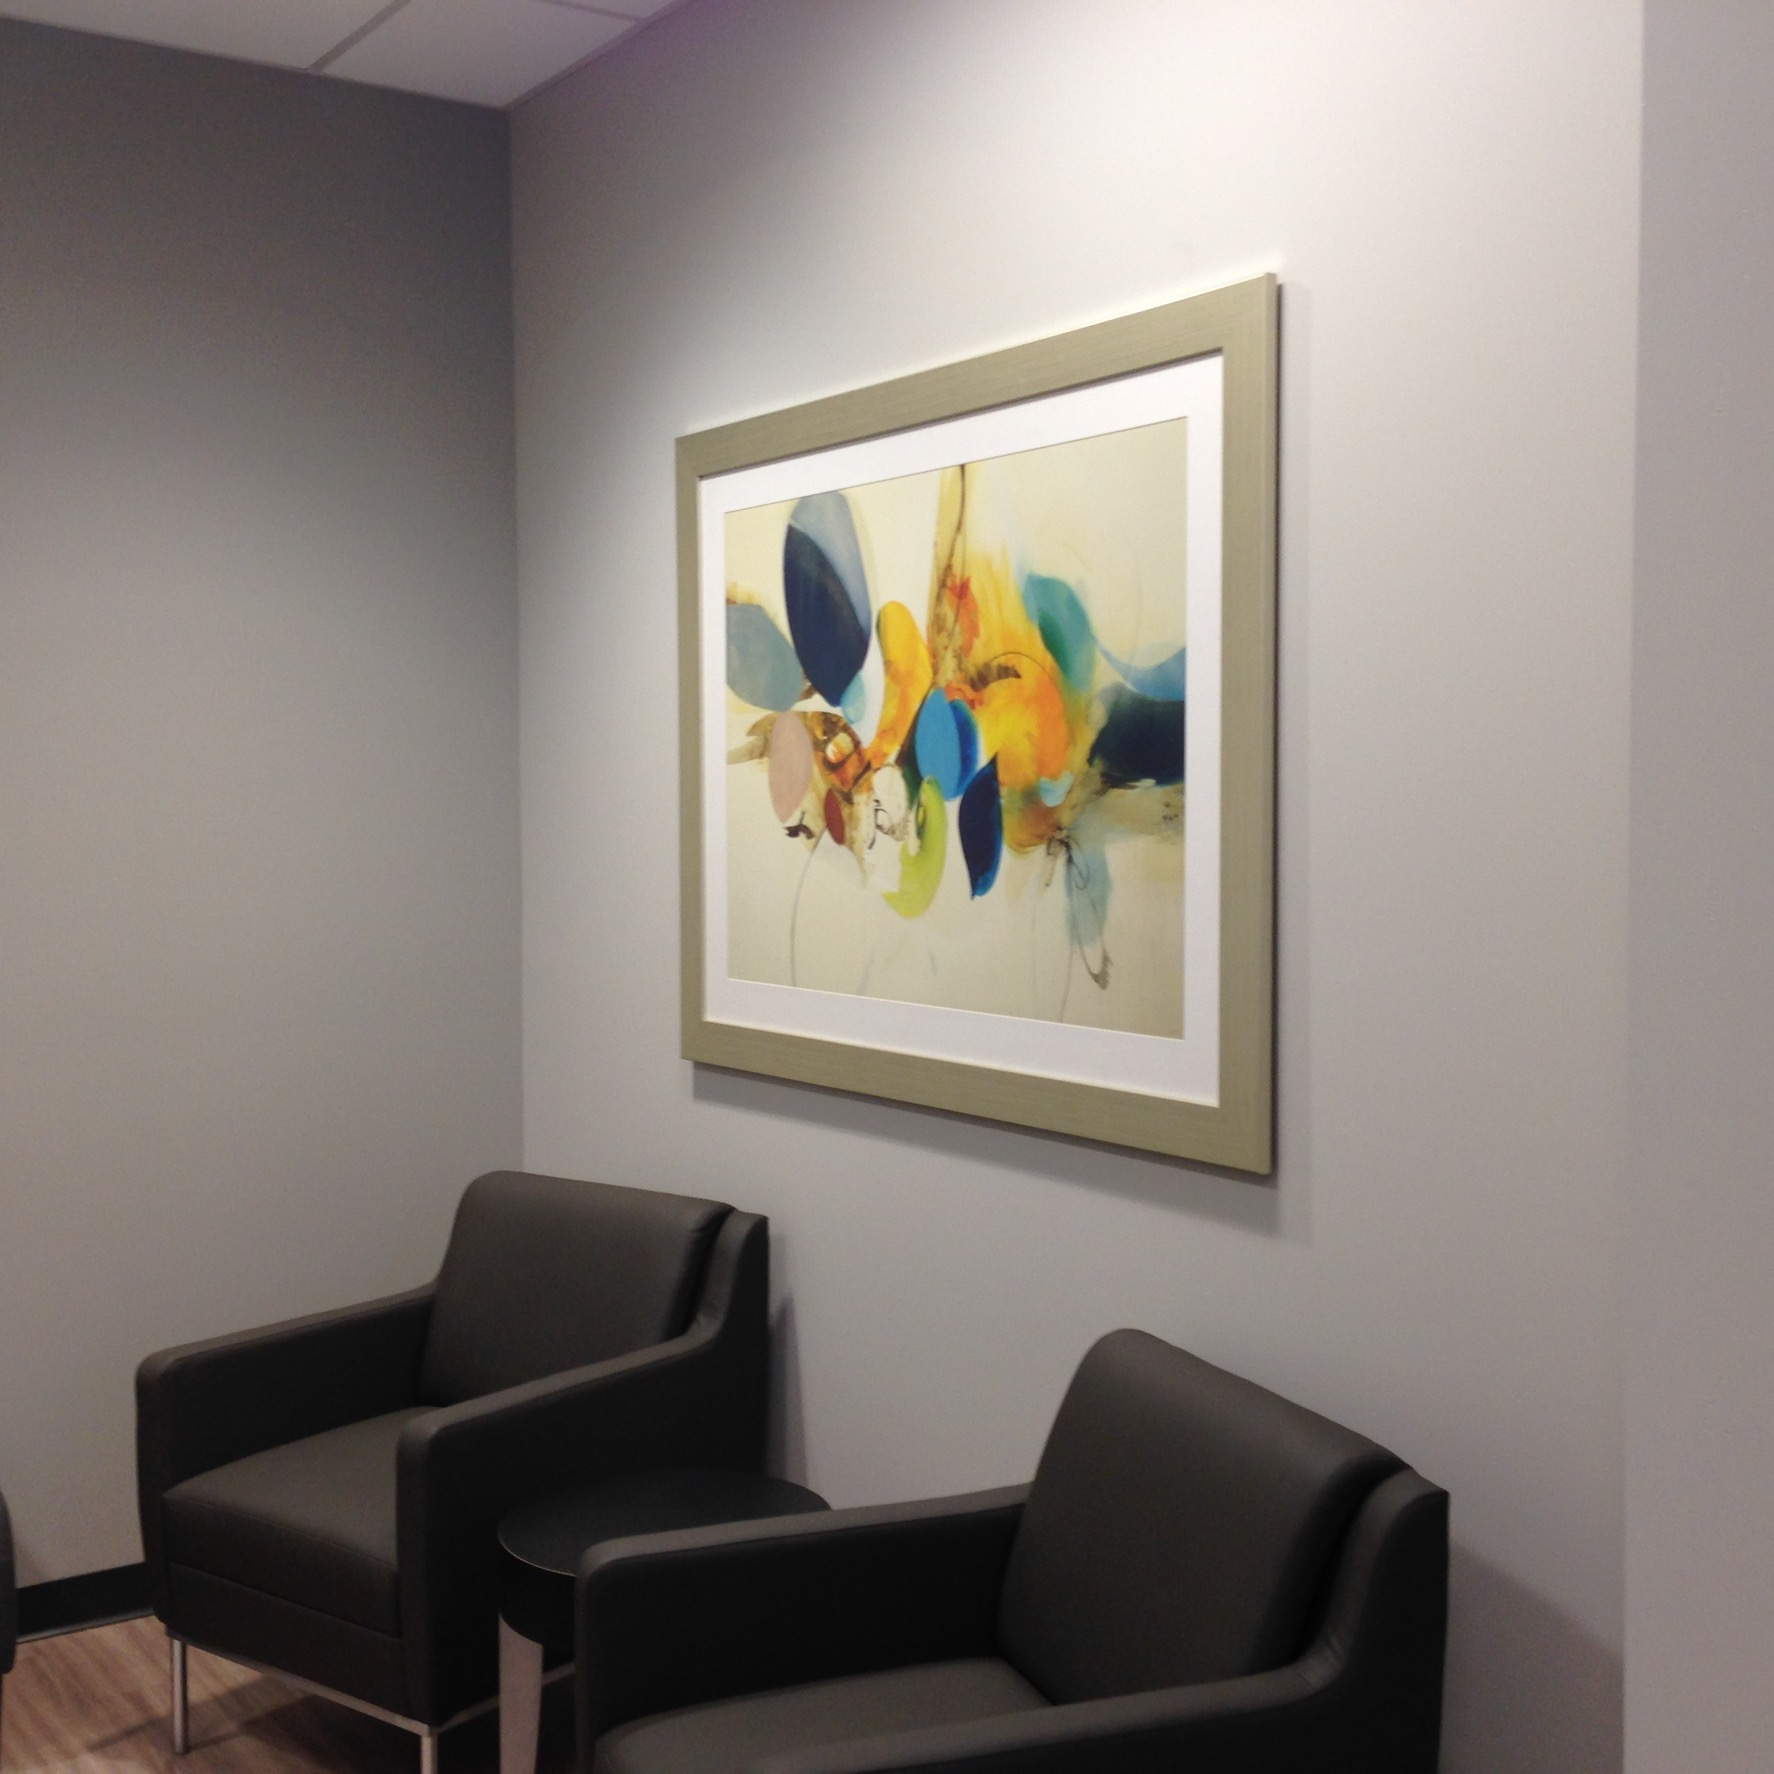 Art Consulting Healthcare Denver PS Art Consulting 2.JPG